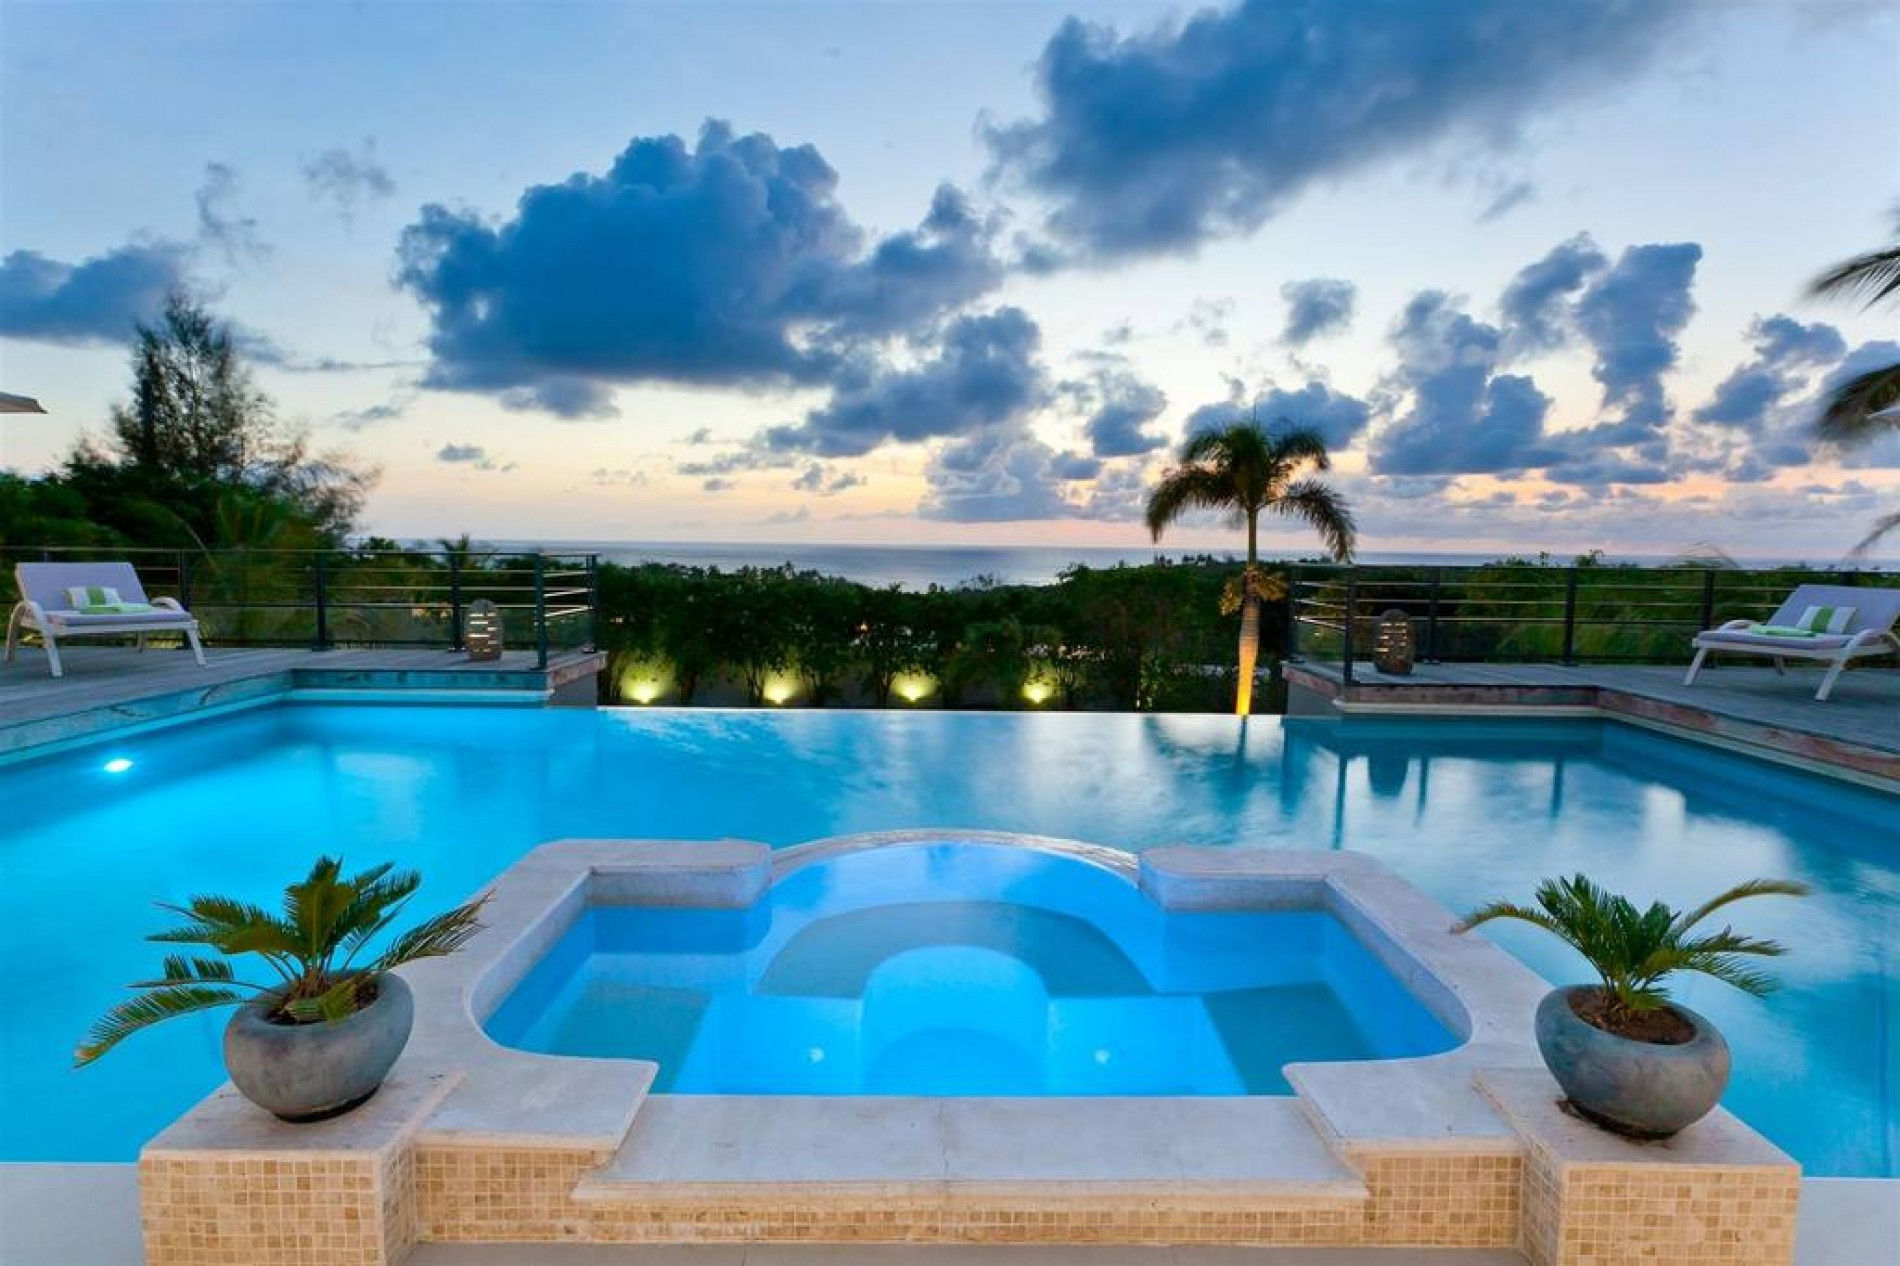 Giselle | Luxury Villa in St Martin | Book Today